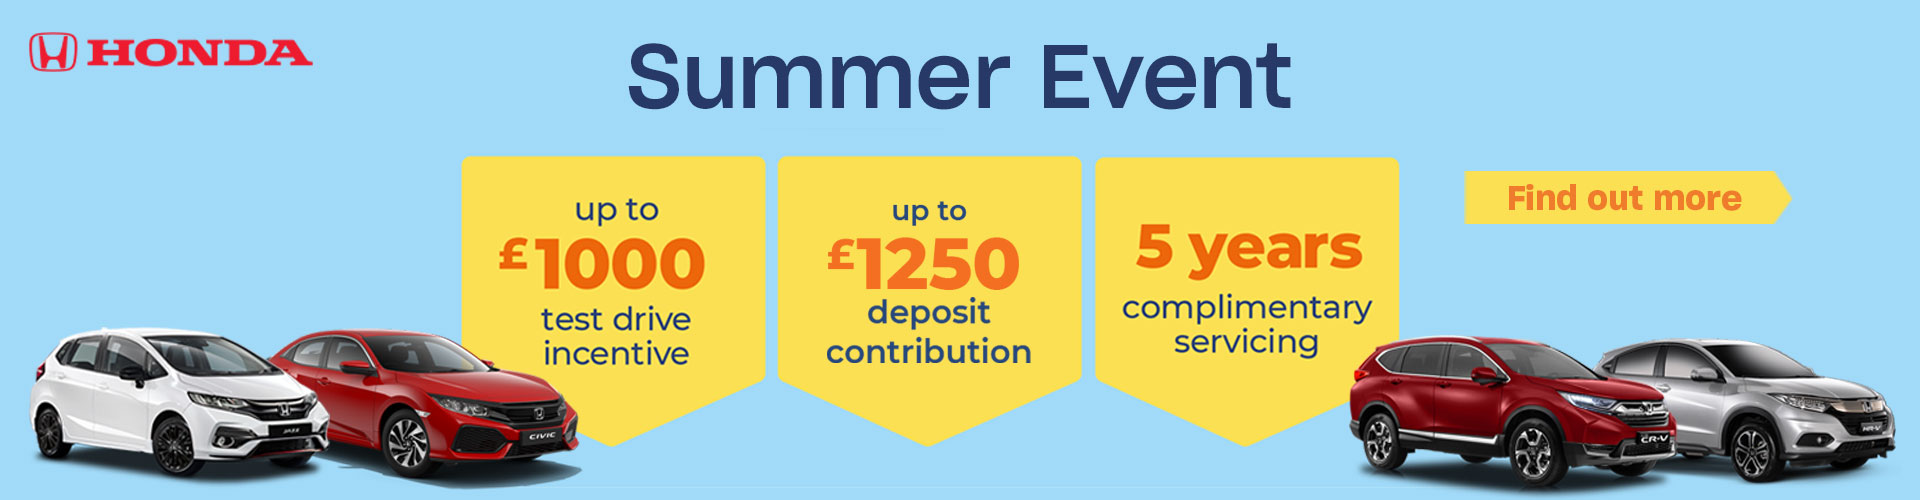 Summer Event - Up to £1000 test drive incentive, 5 years complimentary servicing.